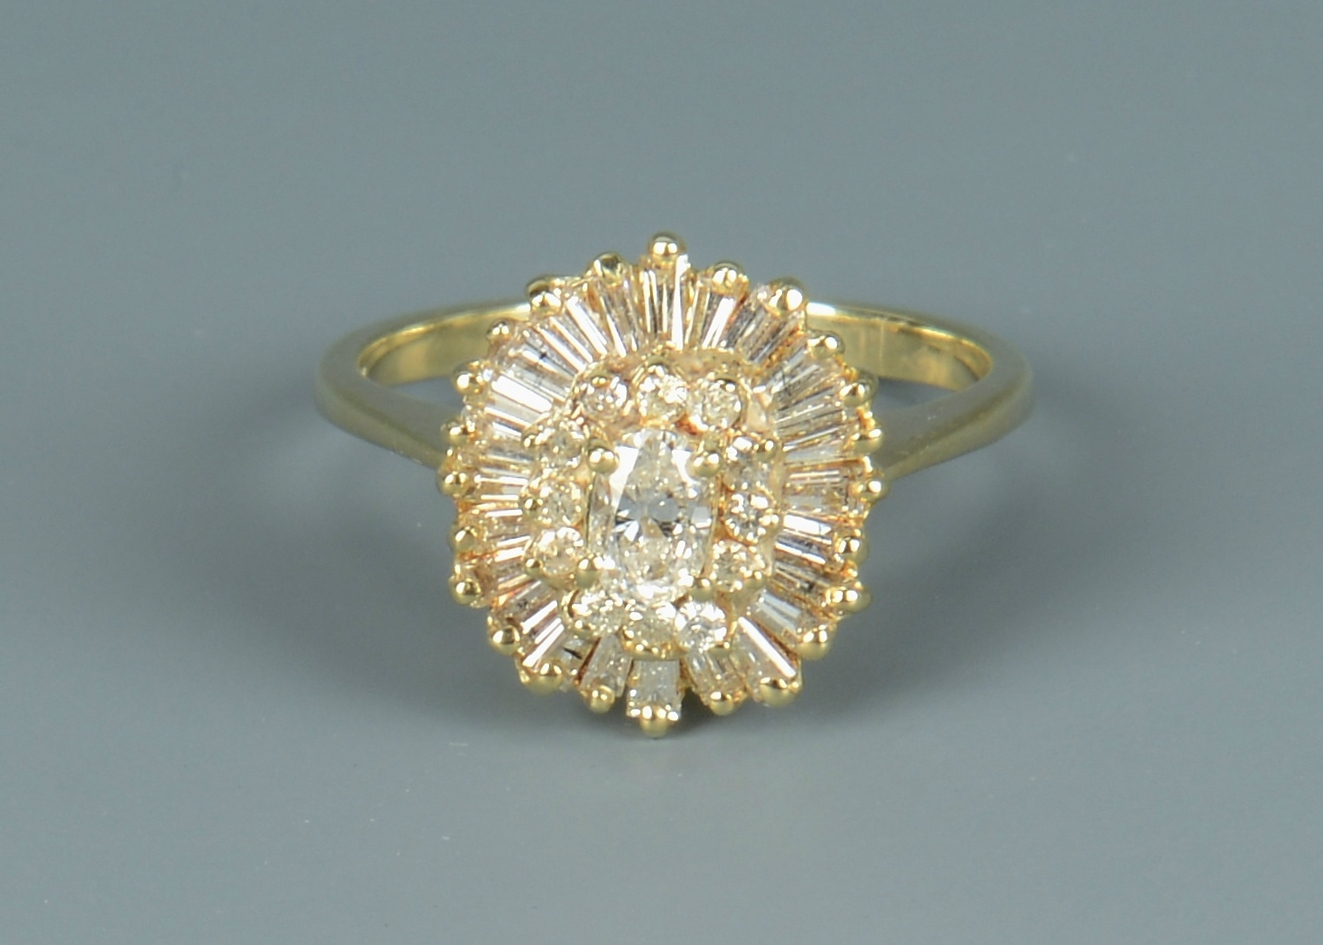 Lot 3088055: Ladies 14k Diamond Cocktail Ring